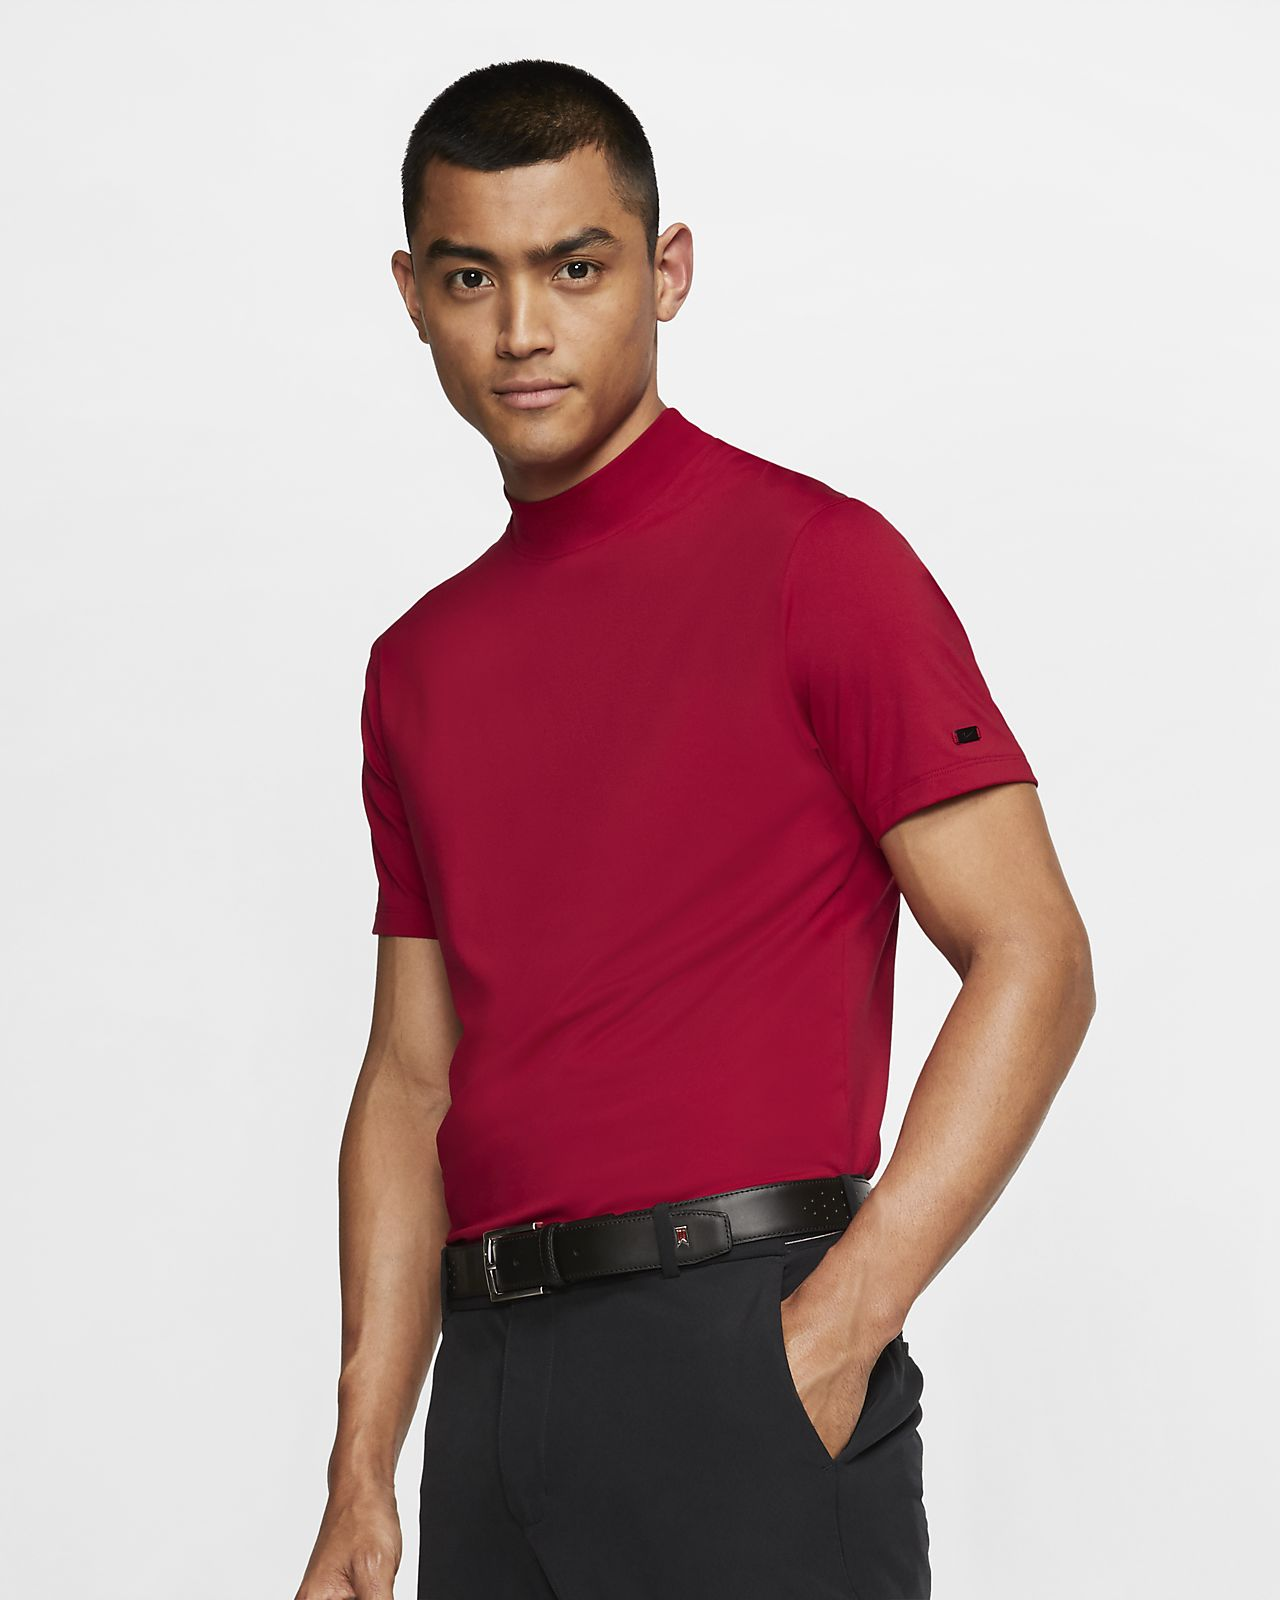 Nike Dri-FIT Tiger Woods Vapor Men's Mock-Neck Golf Top